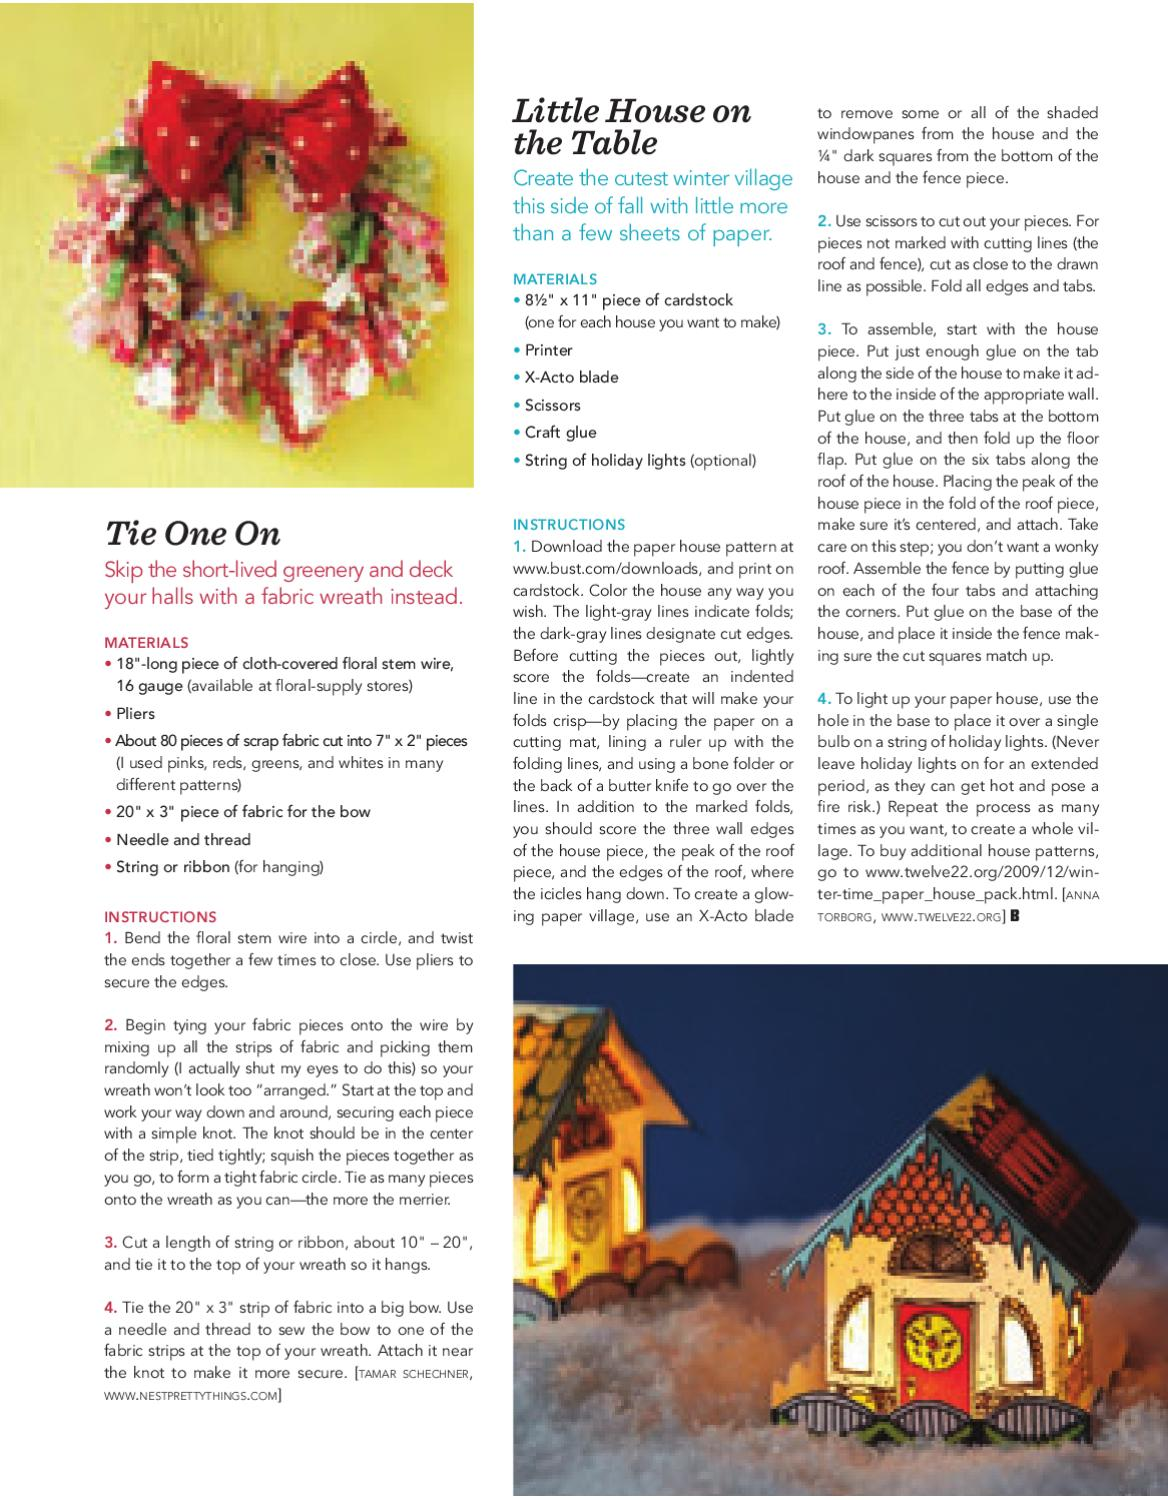 Issue 67 by debbie stoller - issuu